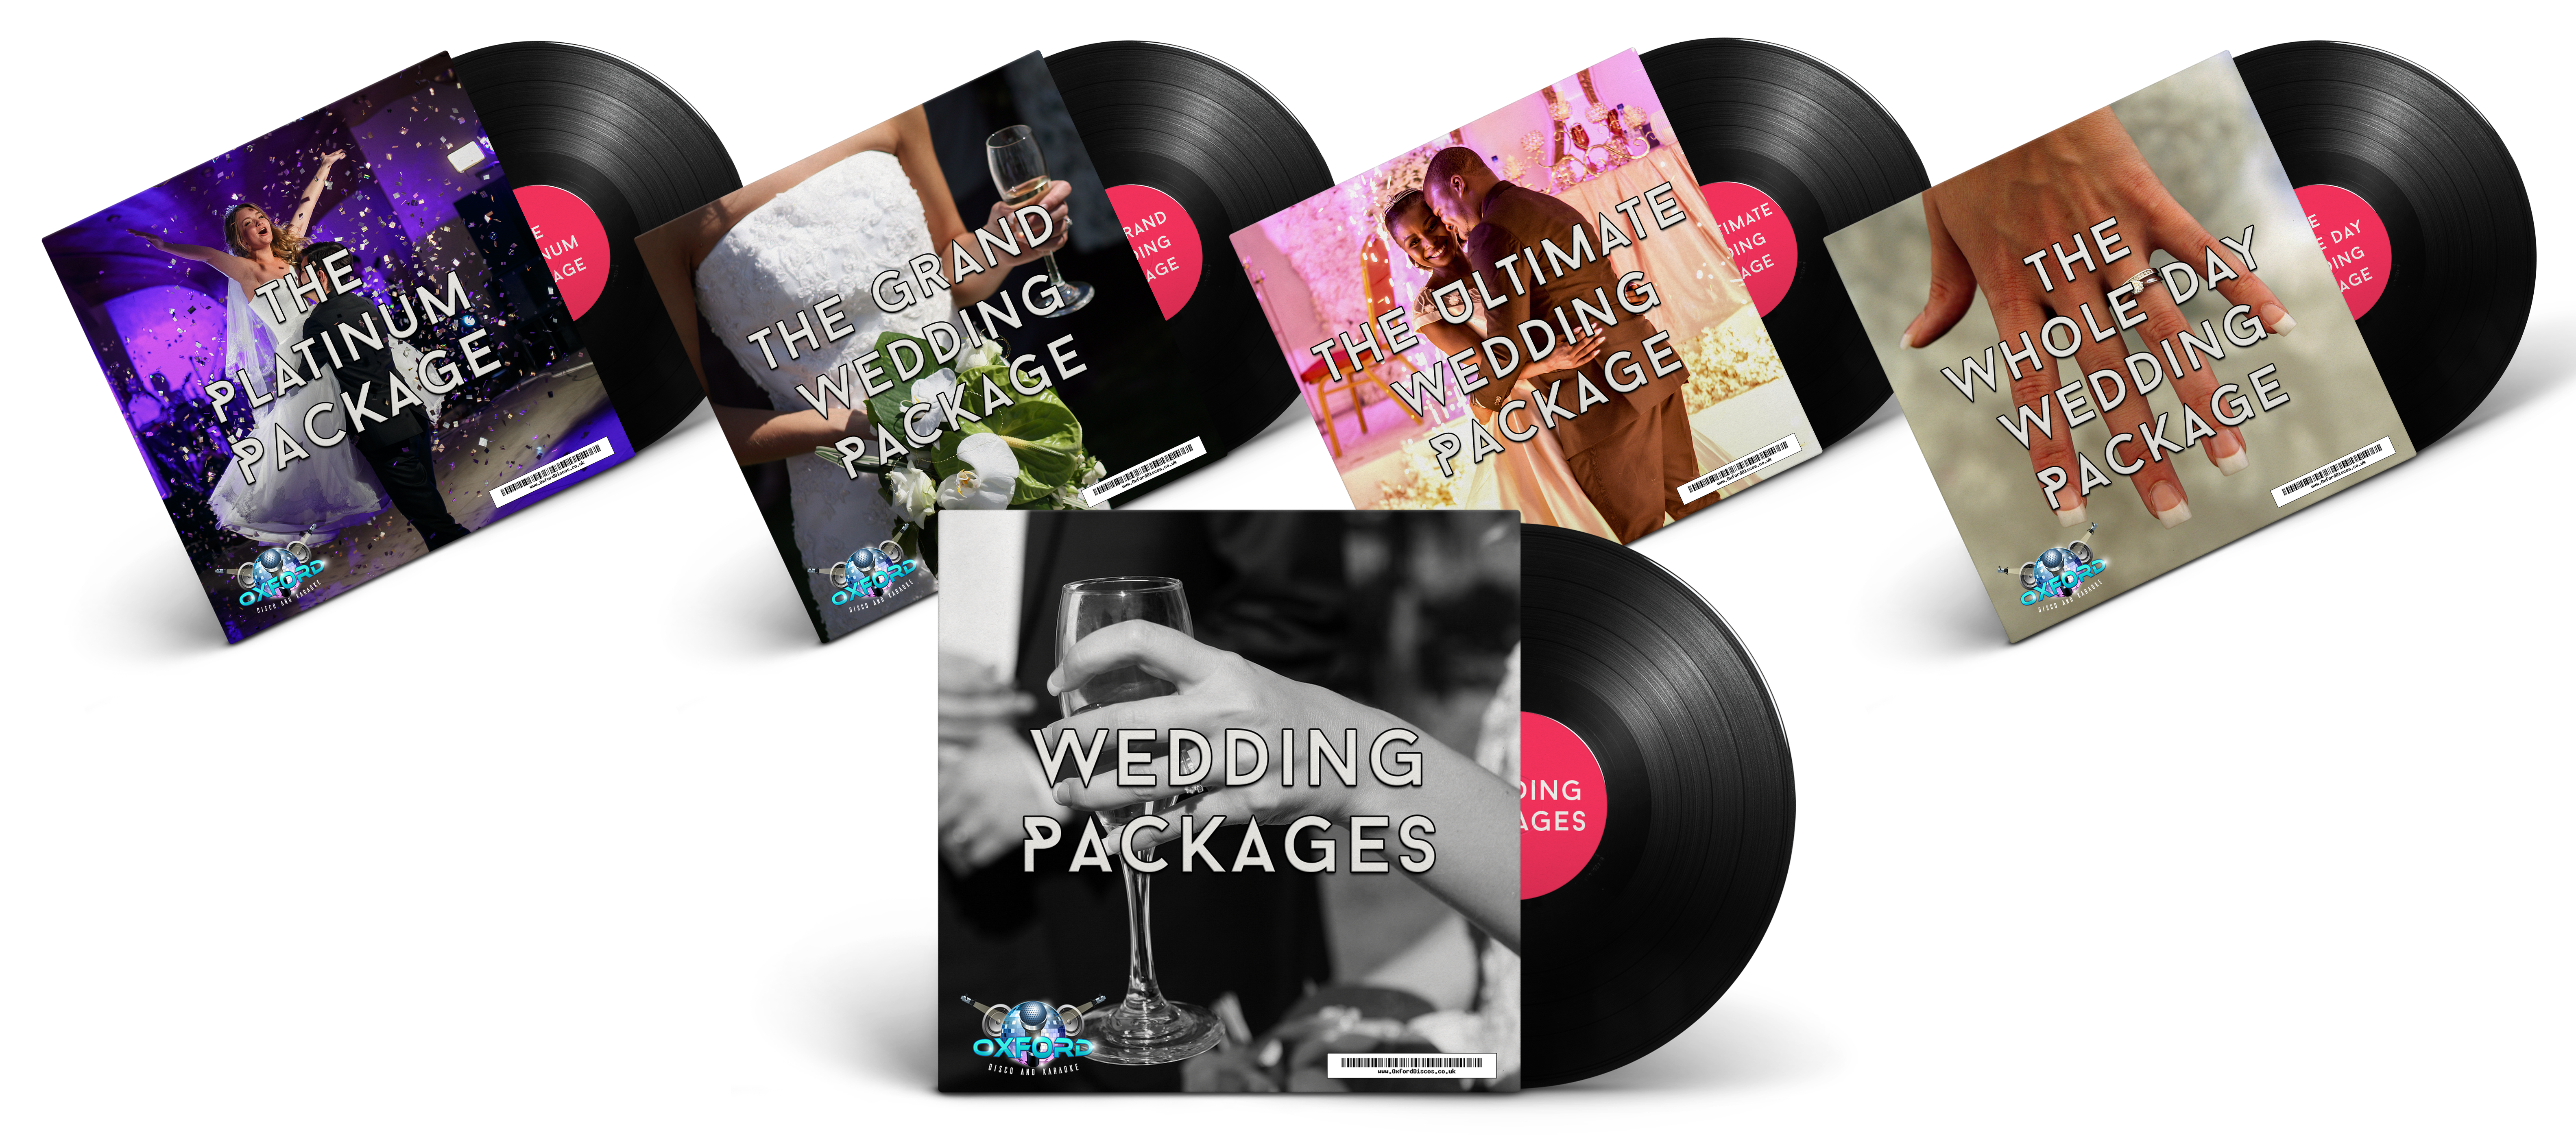 Oxford Disco and Karaoke in Oxfordshire - All Wedding Packages